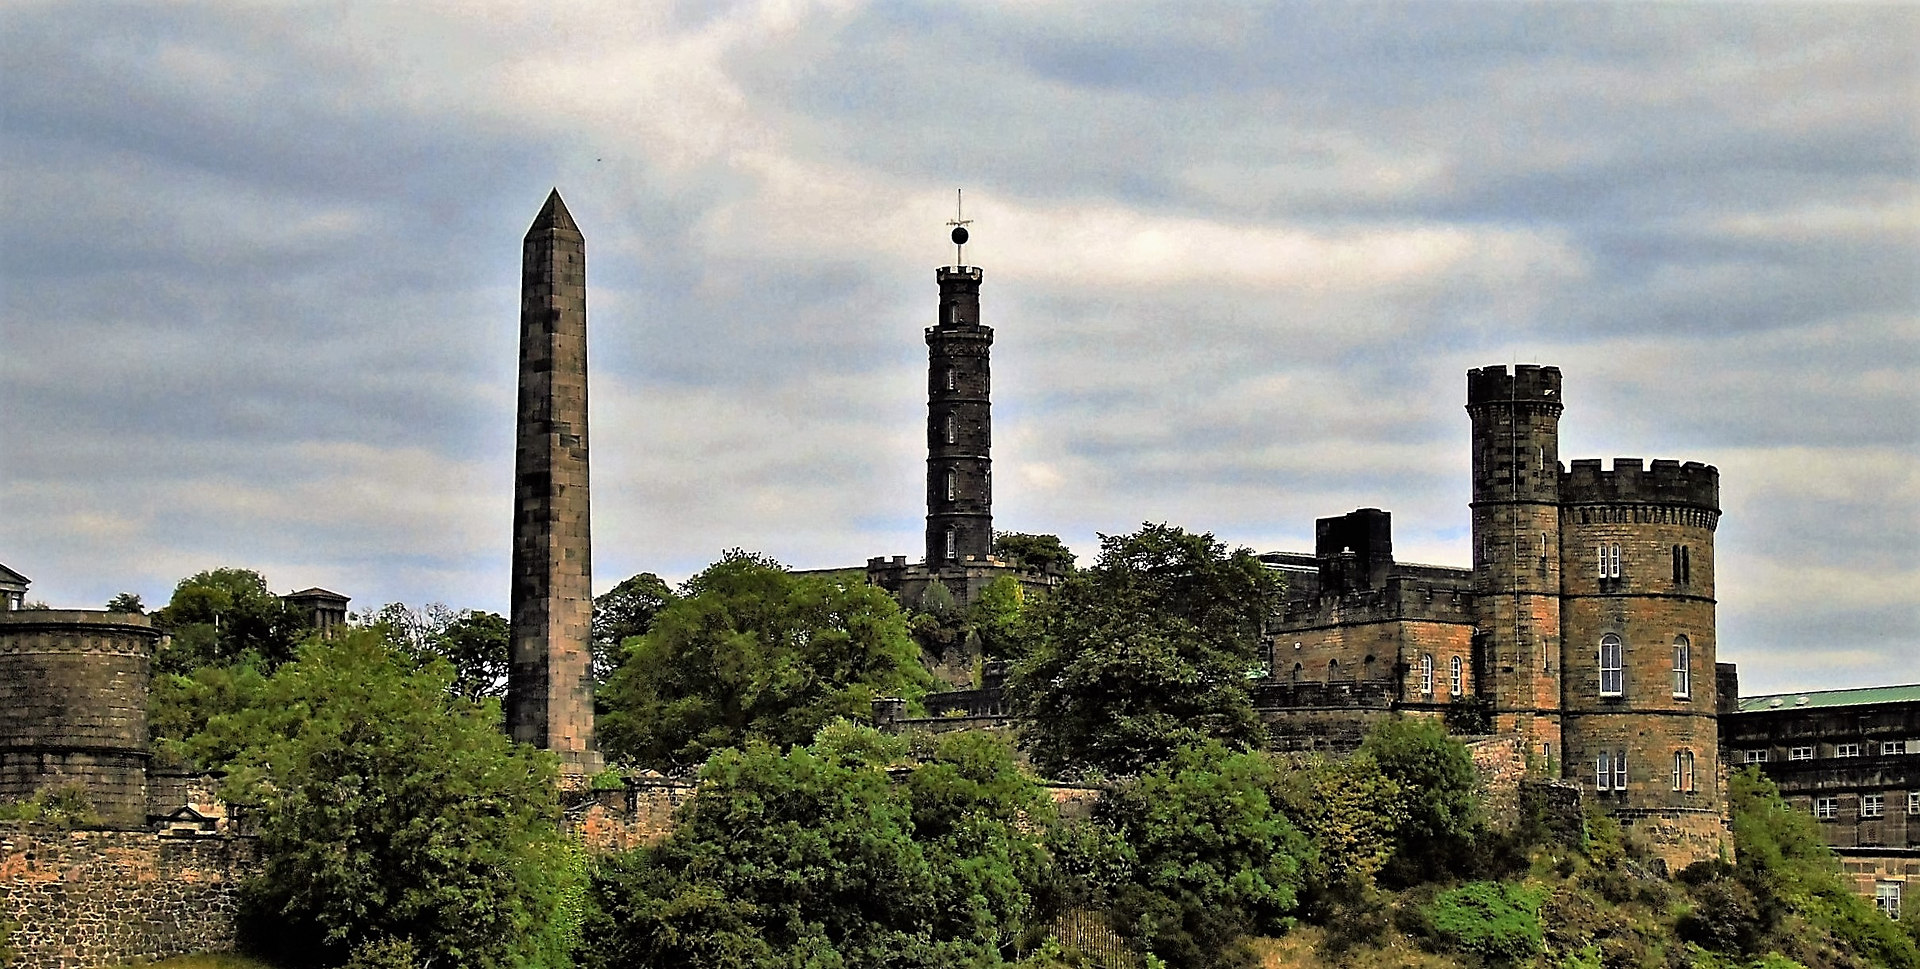 Calton Hill and the Time Ball